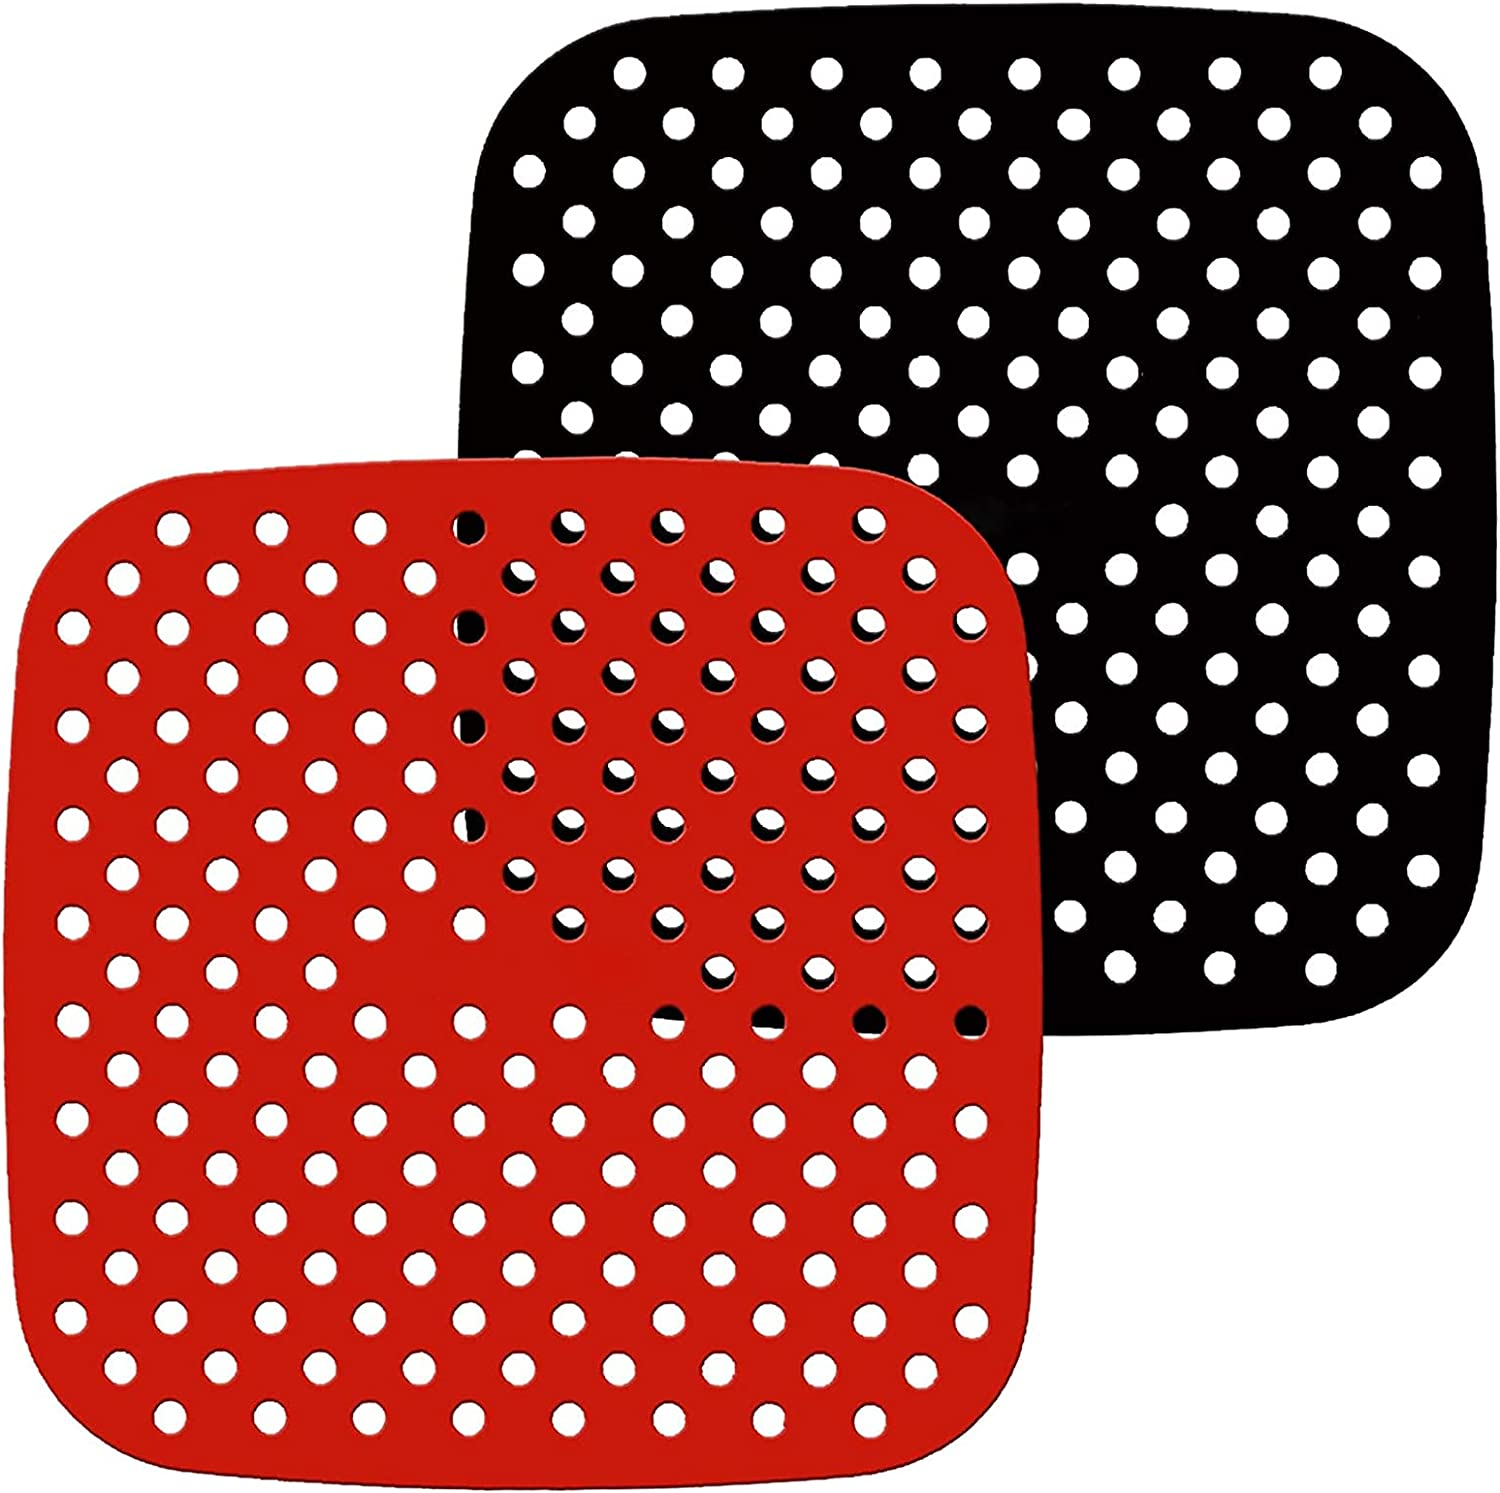 Reusable Air Fryer Liners Silicone, 8.5 Inch Square Air Fryer Mats, Air Fryer Accessories Non-Stick for Ninja, Cosori, Instant Pot, 5.8 QT & Larger Air Fryers, Replacement for Parchment Paper (2-Pack)